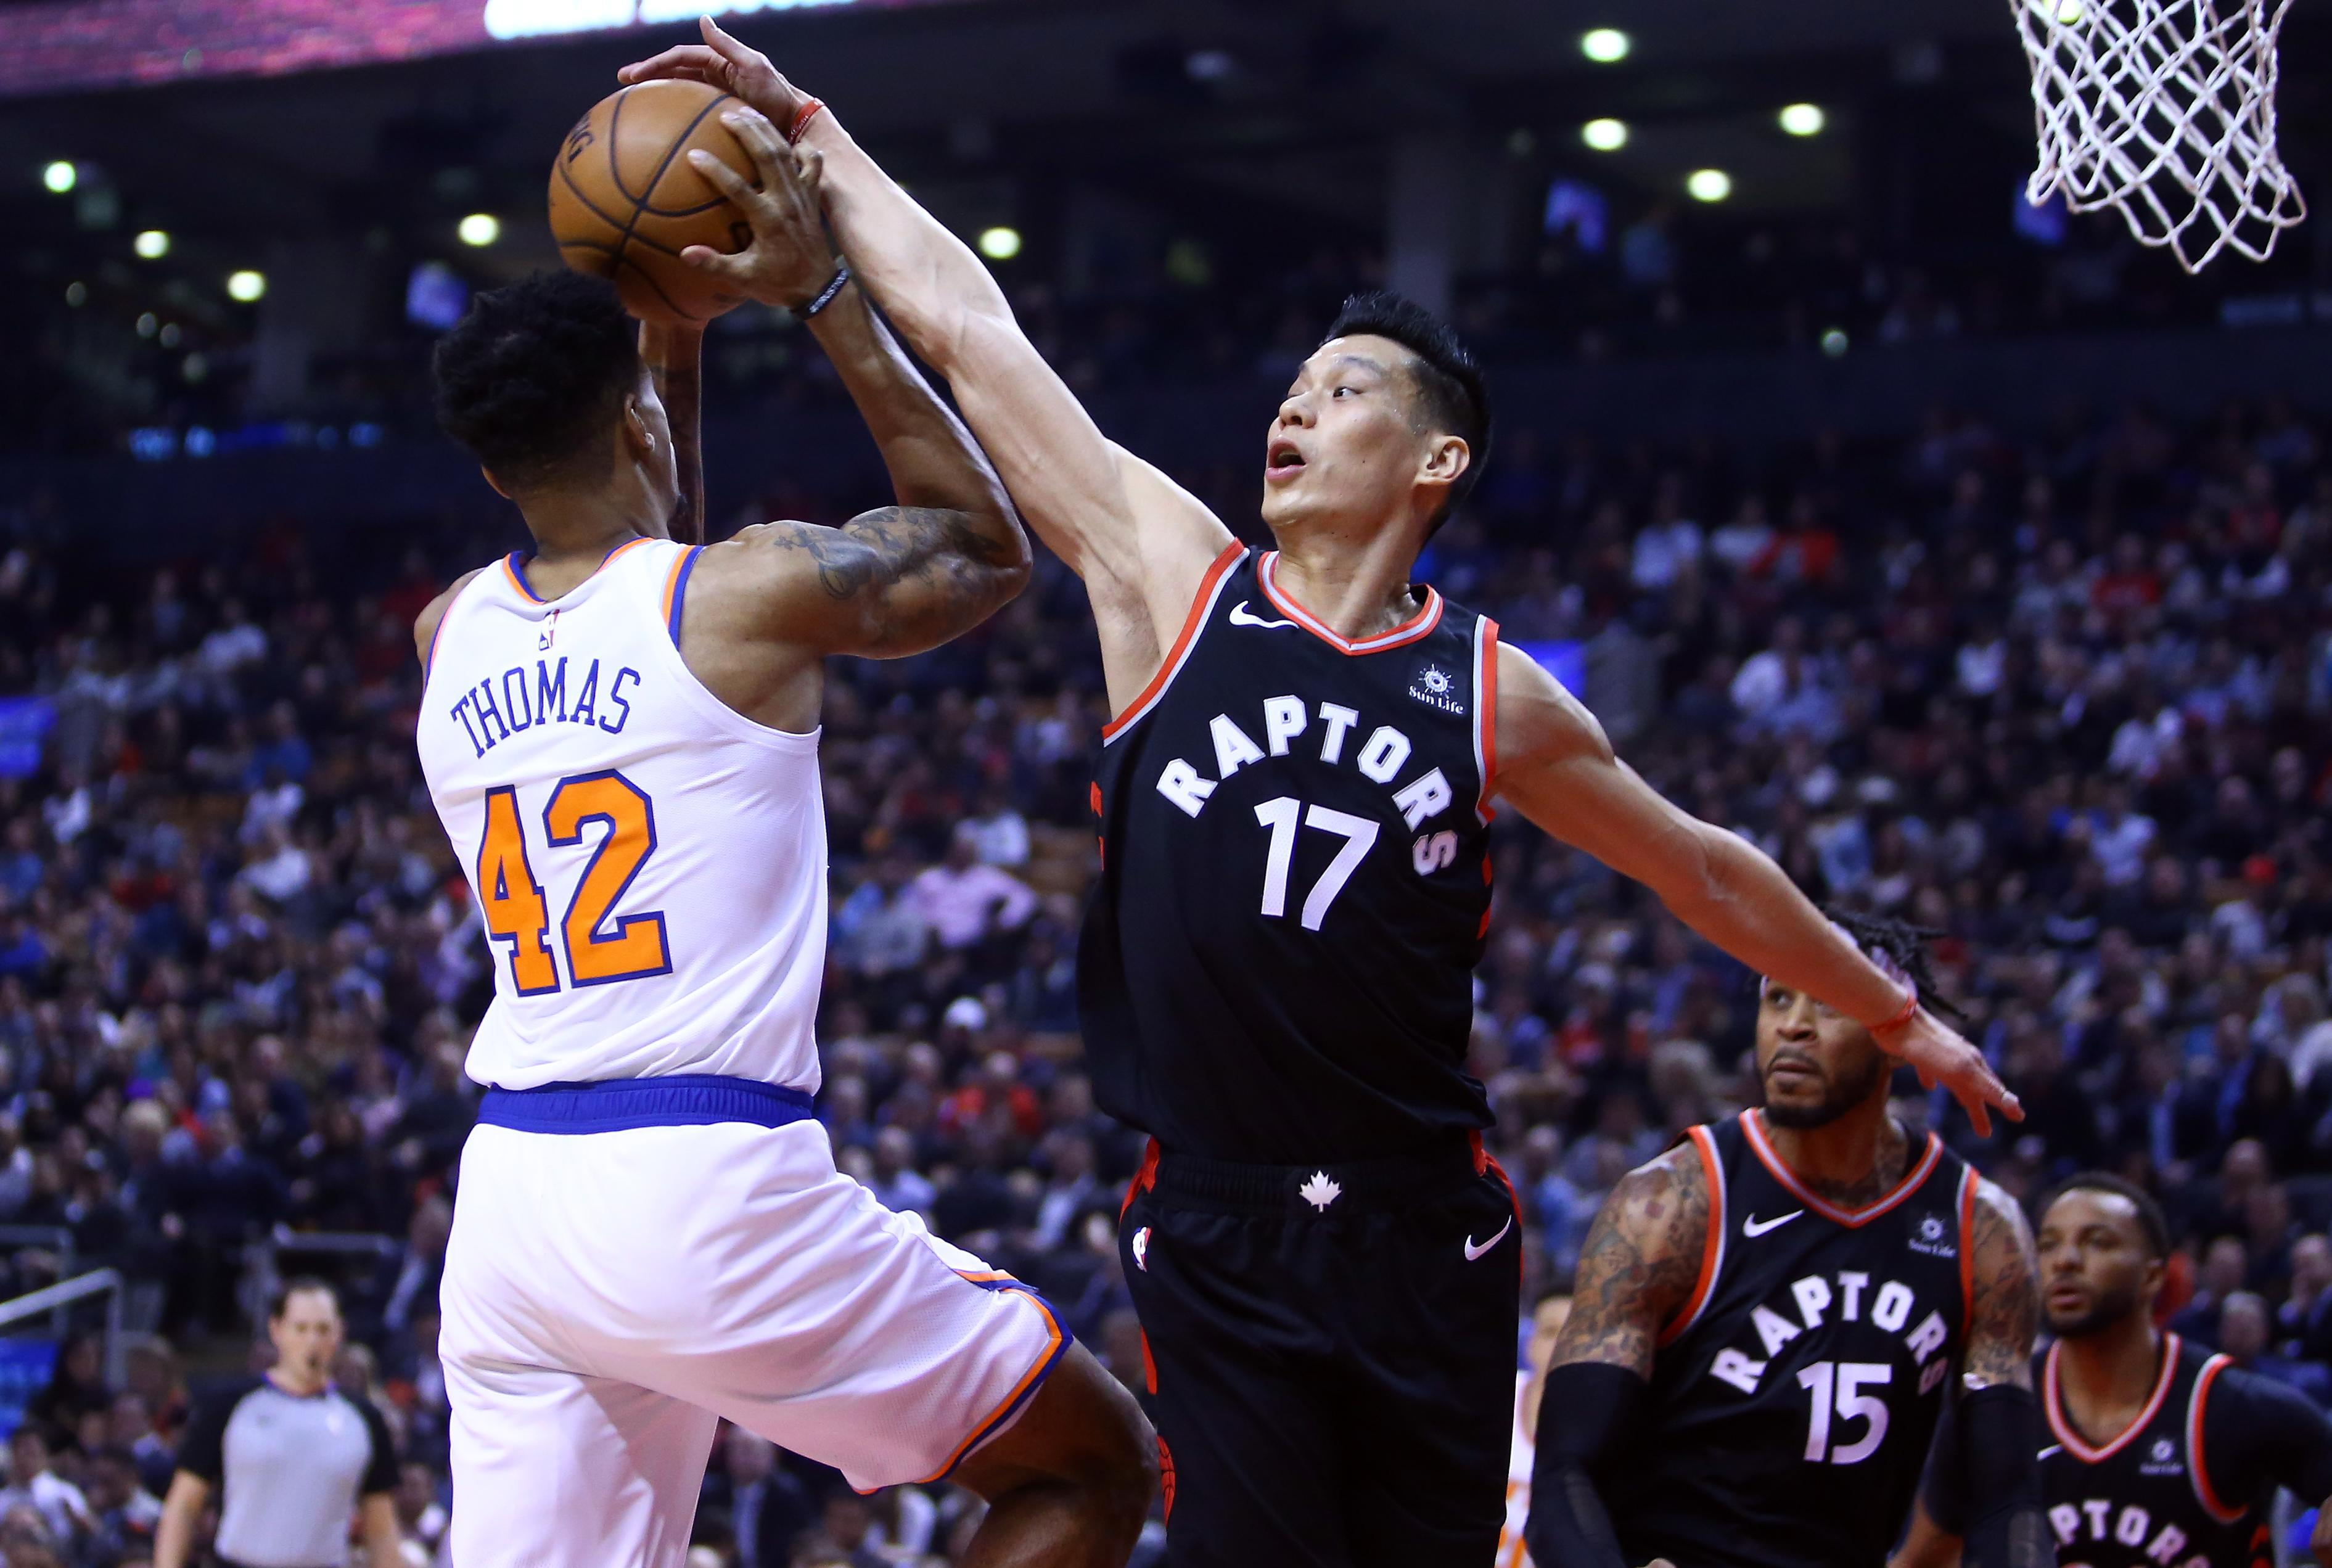 Lance Thomas #42 of the New York Knicks shoots the ball as Jeremy Lin #17 of the Toronto Raptors